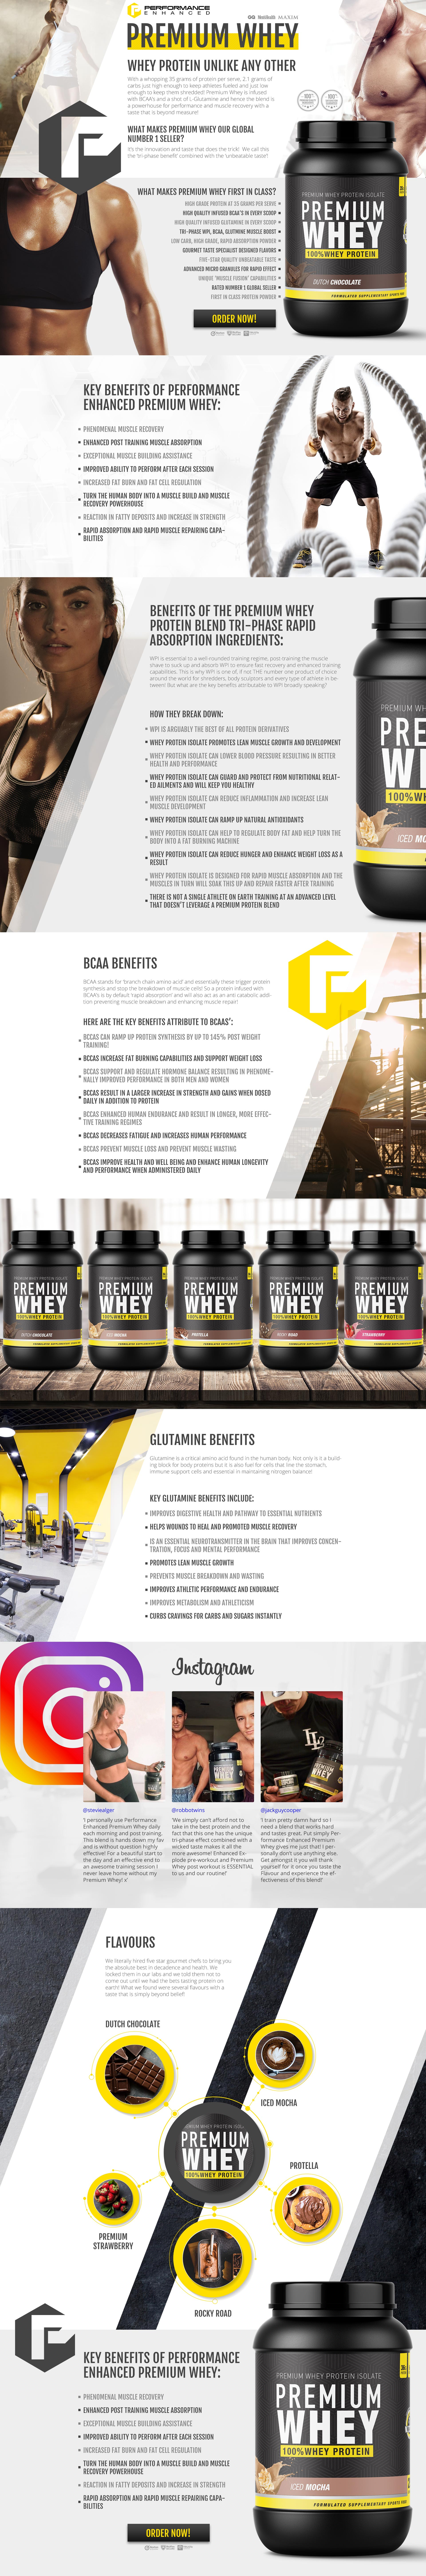 Performance Enhanced Whey Landing Page by Jon Craig Design